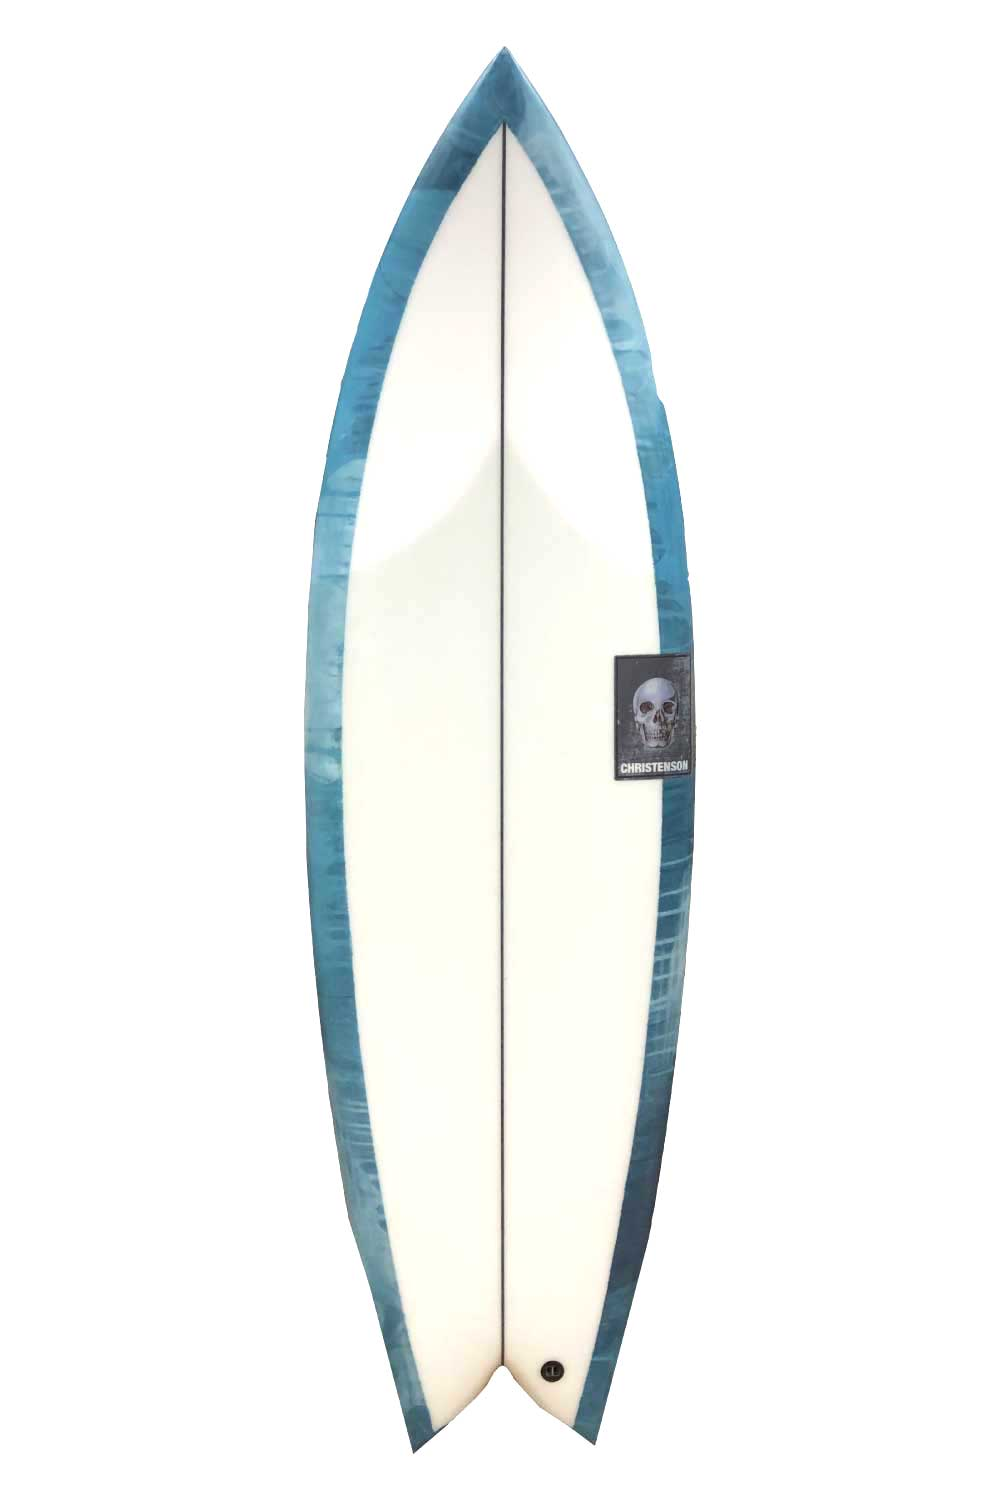 Chris Christenson 5'7 C-Hawk Fish Surfboard